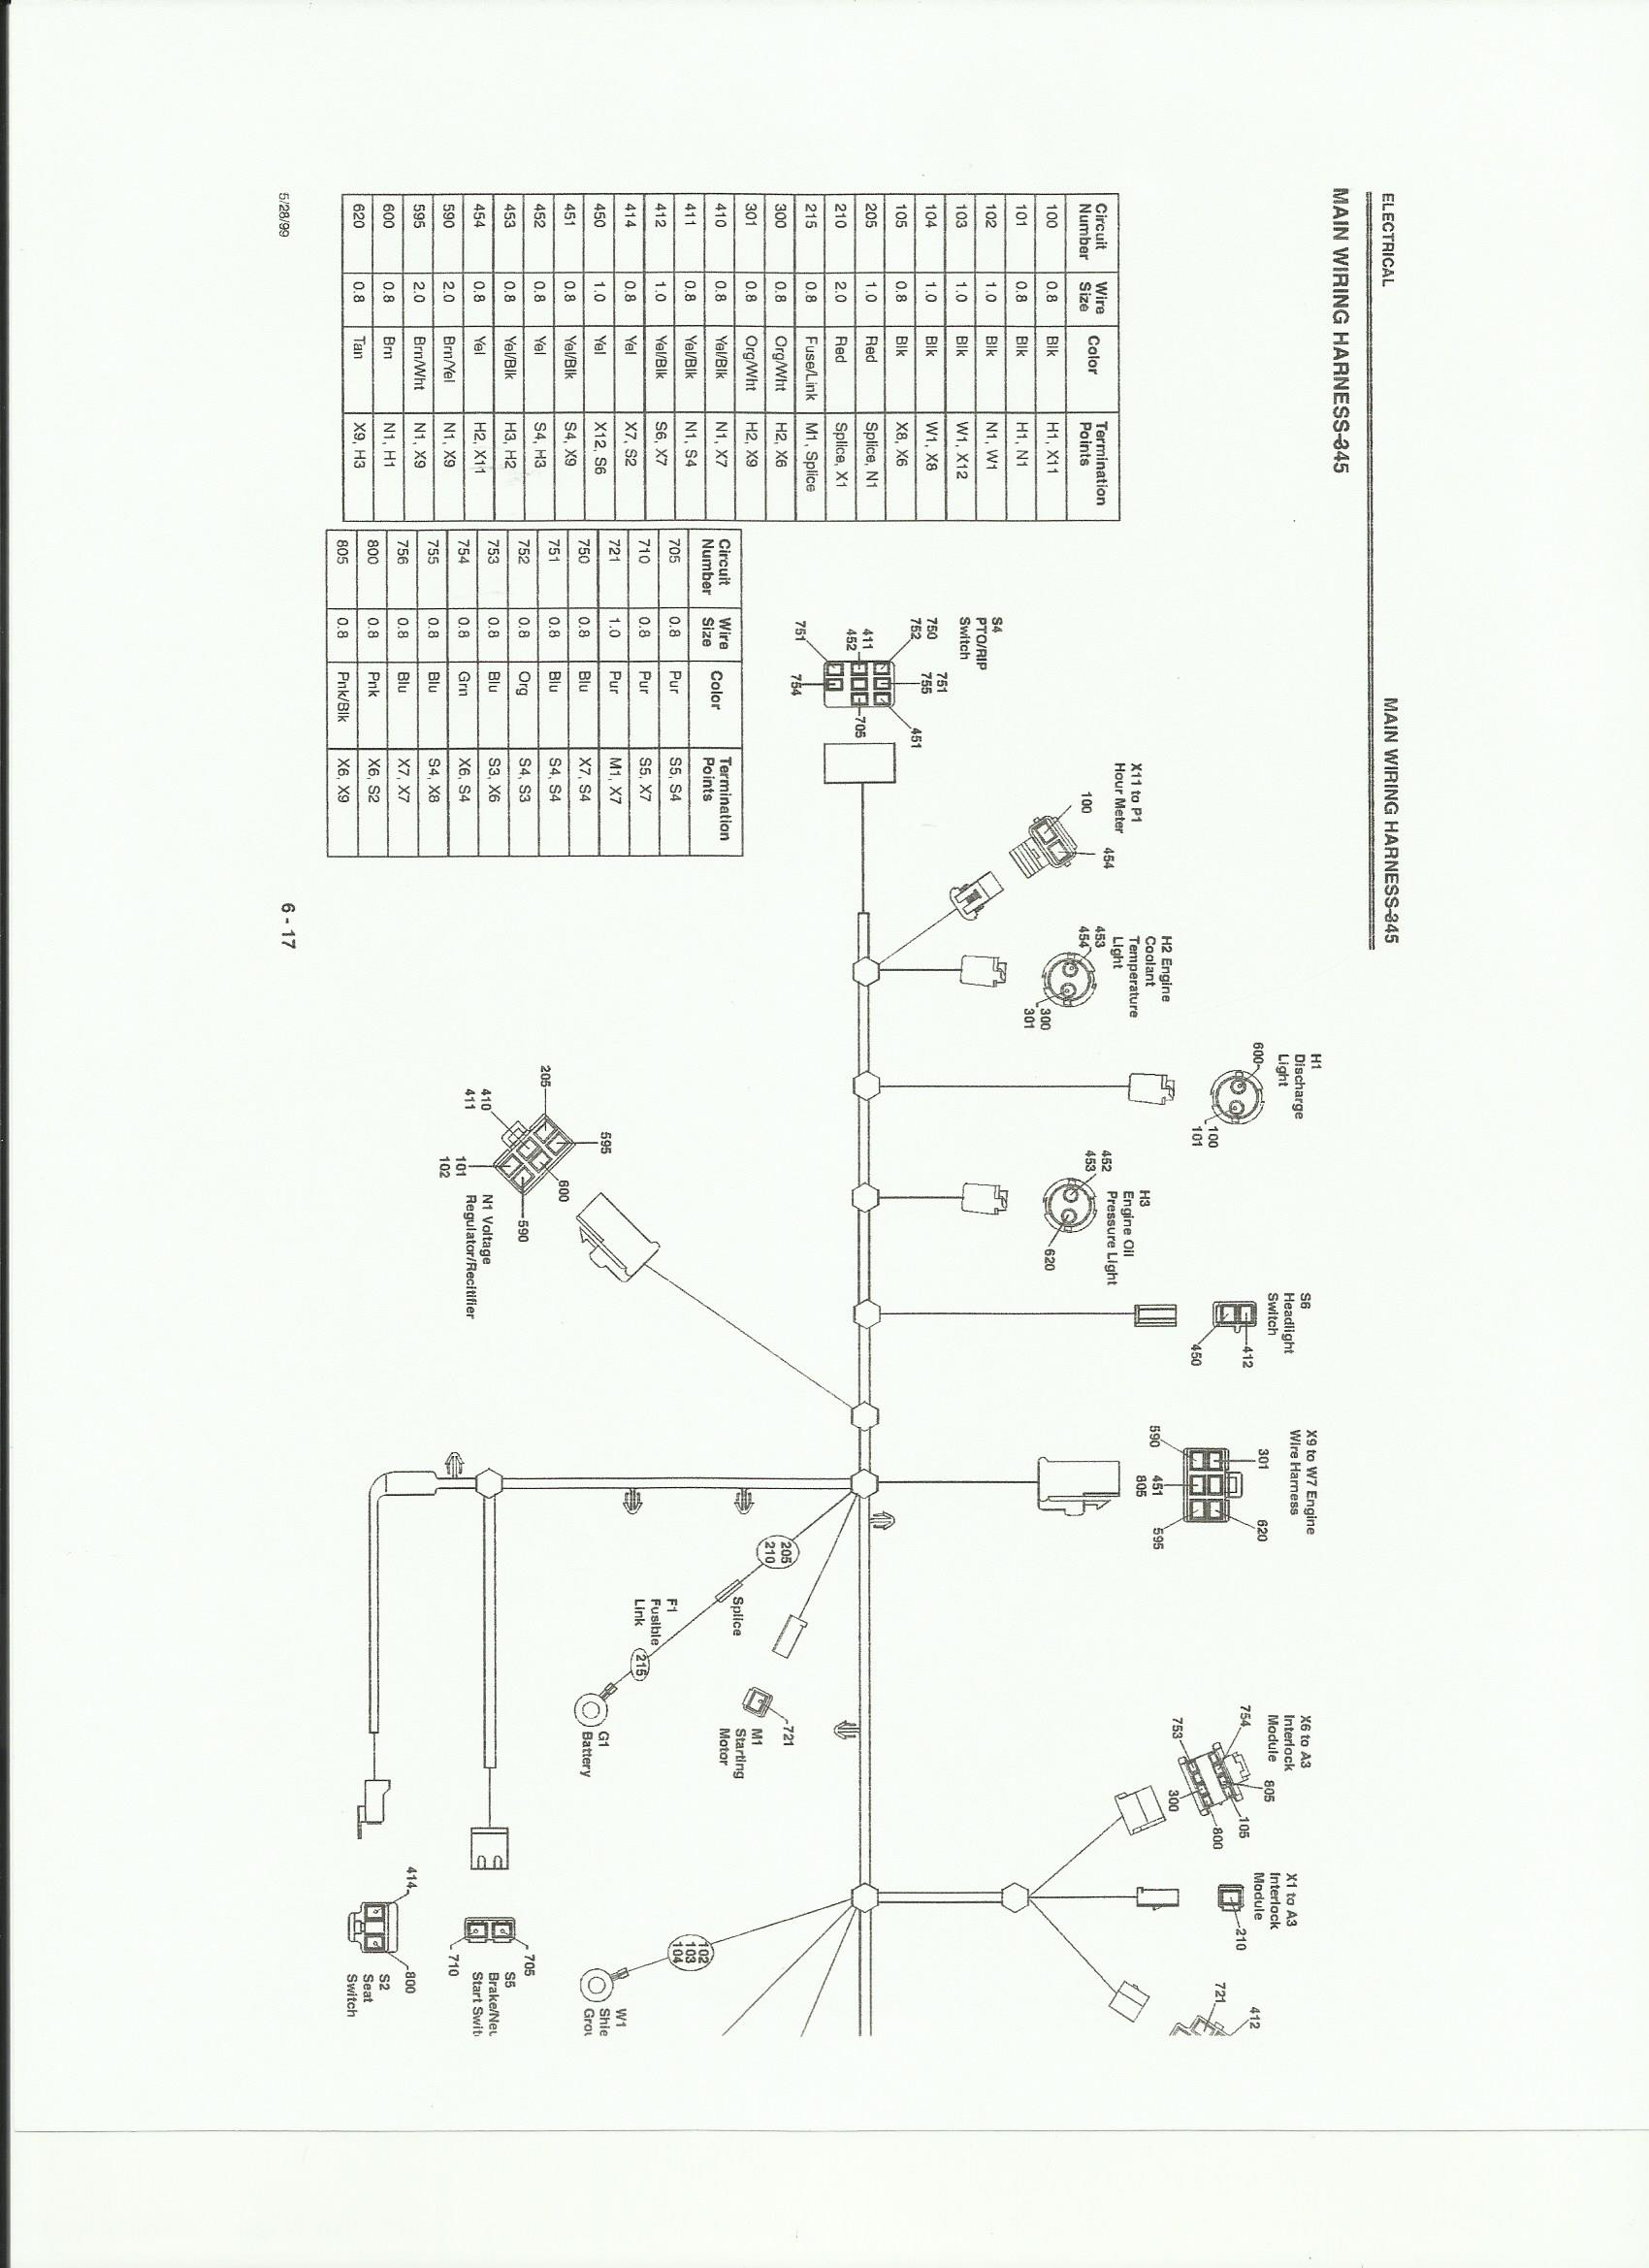 john deere lx277 wiring-diagram, john deere 655 parts diagram, john deere starter solenoid wiring diagram, john deere gx345 parts diagram, john deere brake diagram 2355, john deere f725 wiring-diagram, john deere riding mower wiring diagram, john deere gator hpx wiring-diagram, john deere gx345 wiring-diagram, john deere 4100 wiring-diagram, john deere 455 wiring-diagram, john deere 4020 starter wiring diagram, john deere 310d backhoe wiring diagram, john deere 757 wiring-diagram, john deere f935 wiring-diagram, john deere 5103 wiring-diagram, bx2230 kubota wiring-diagram, john deere m wiring-diagram, john deere 4020 wiring diagram for tractor, john deere lx255 wiring-diagram, on john deere 345 wiring diagram